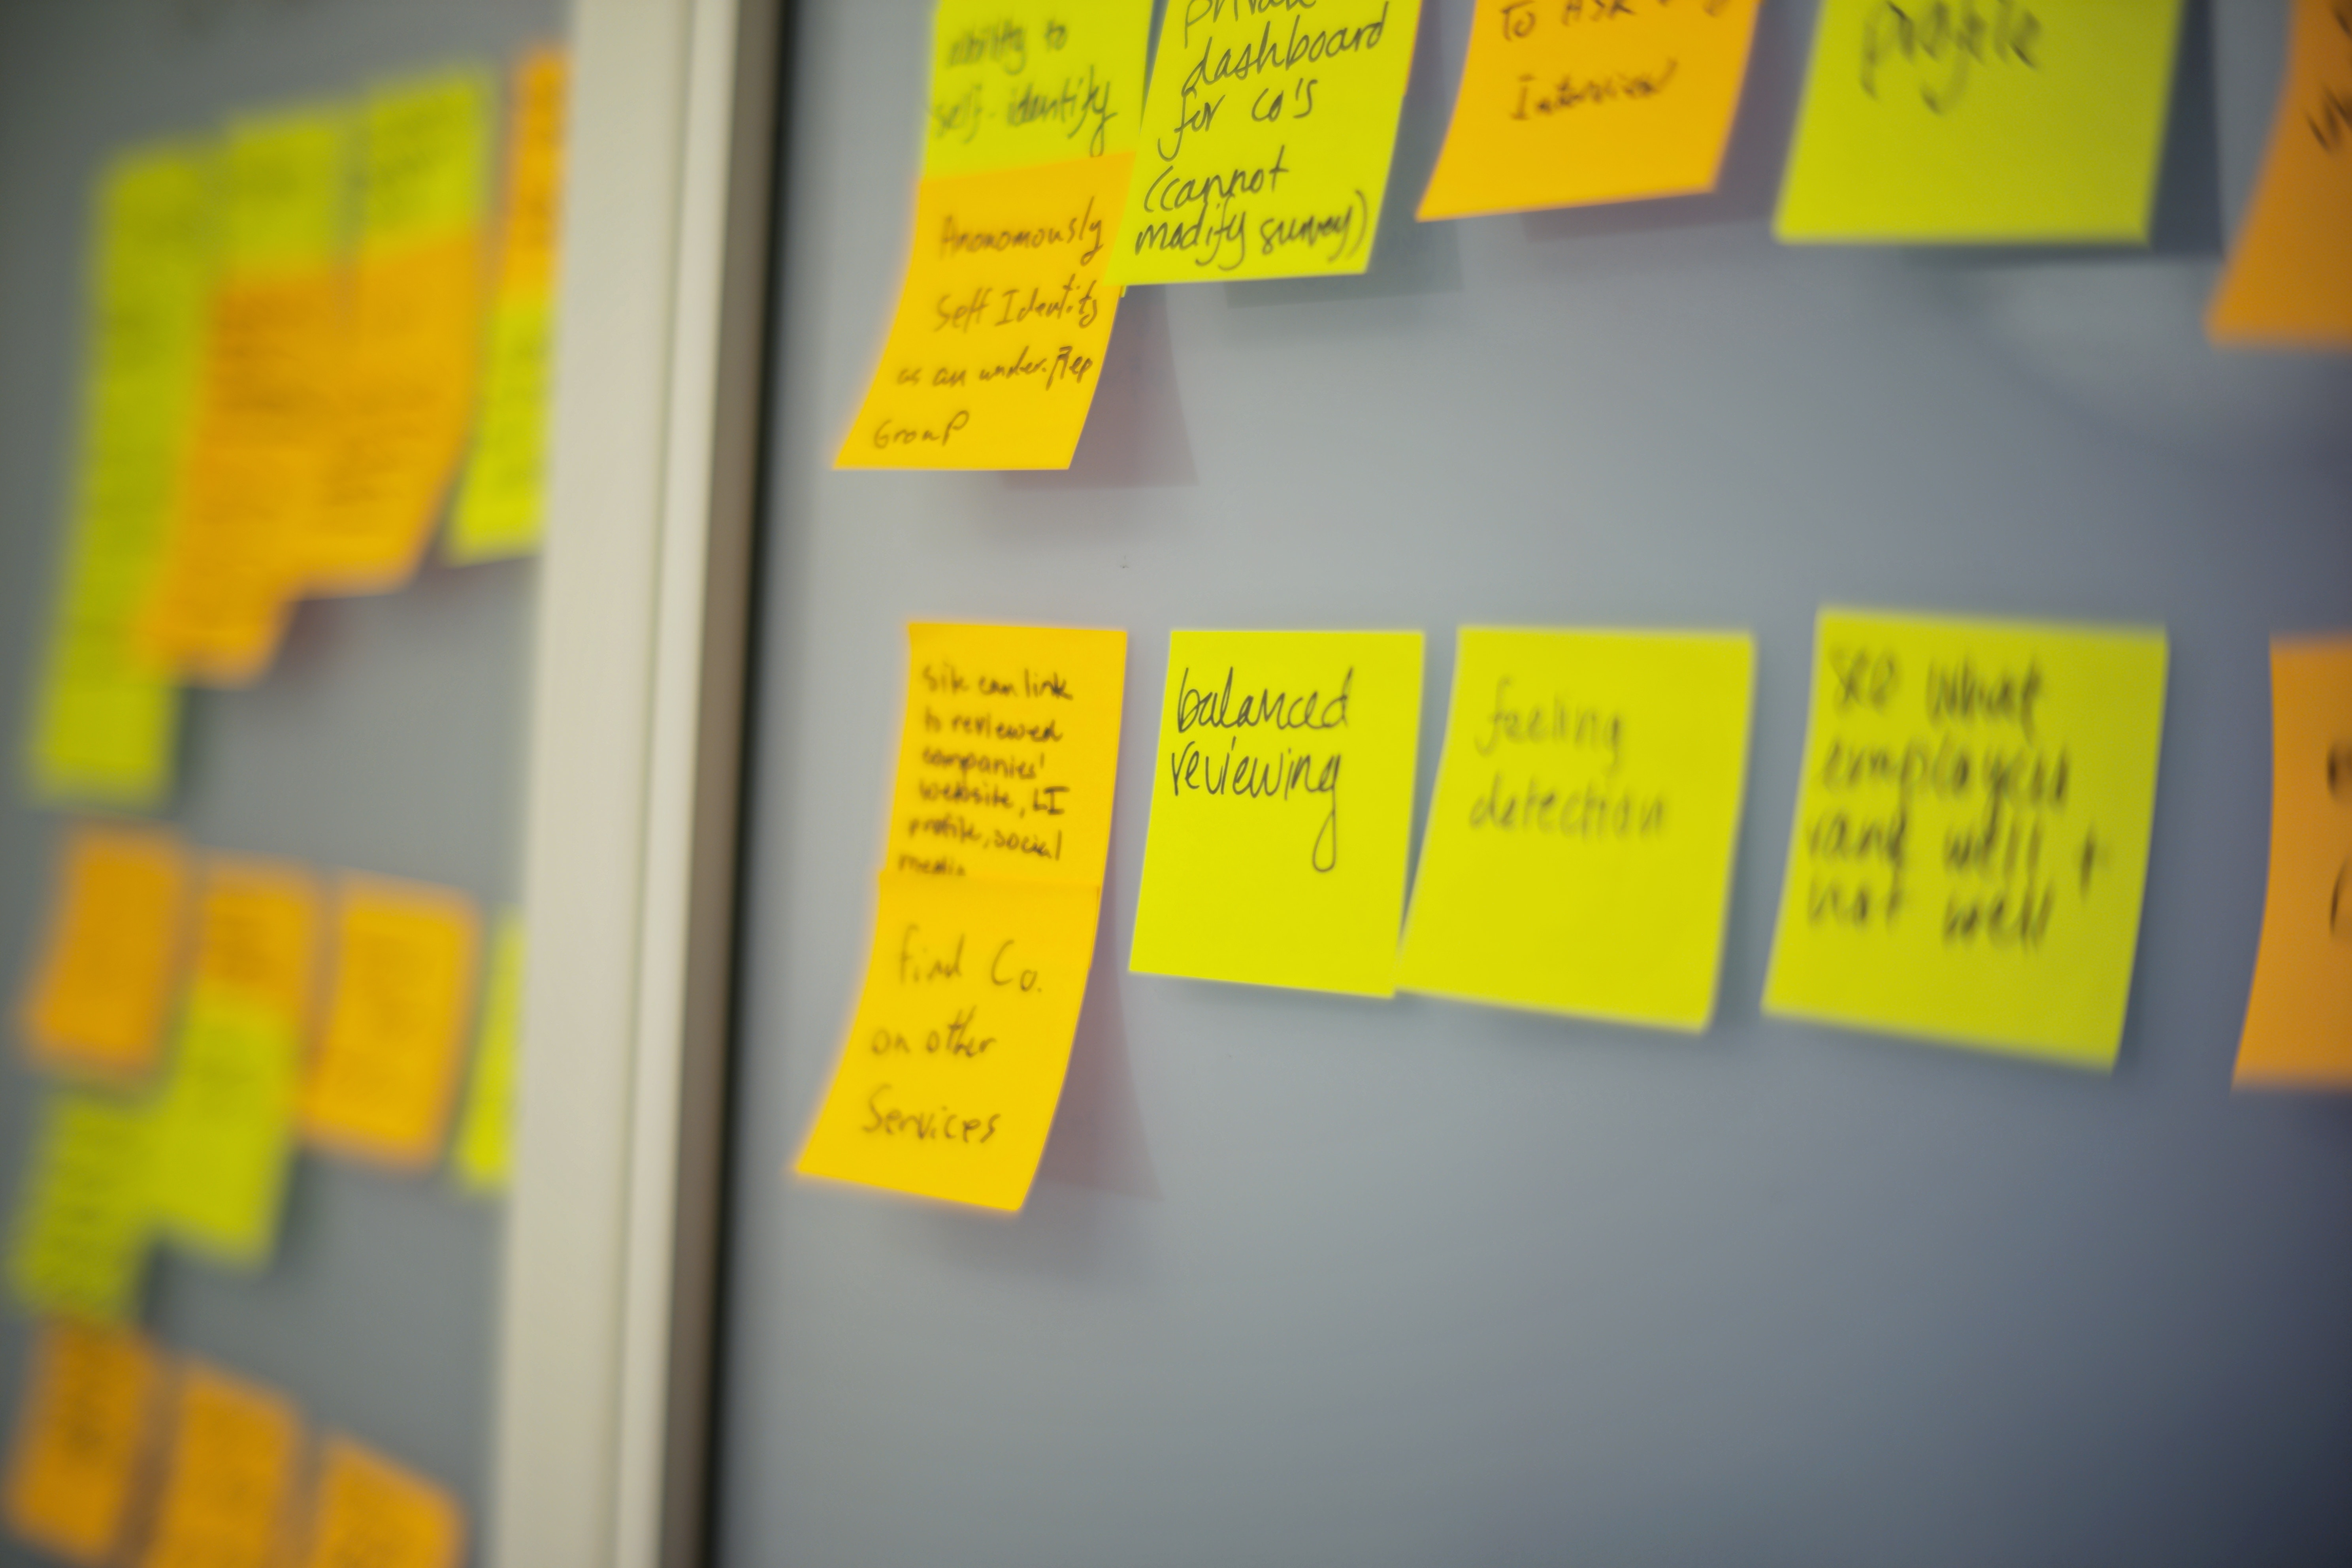 Post-It Notes Covering Wall